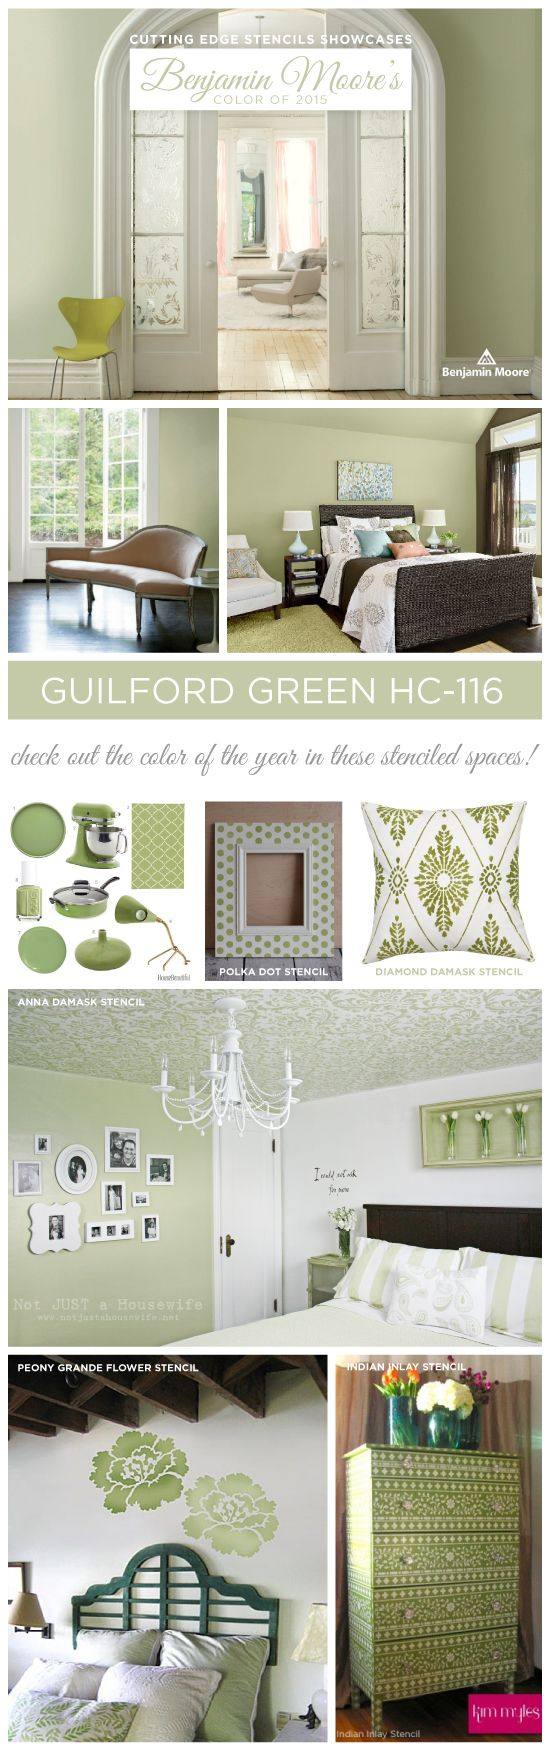 Best 25 wall stencil designs ideas on pinterest wall stenciling cutting edge stencils shares stenciled home decor ideas using benjamin moores color of the year 2015 amipublicfo Image collections